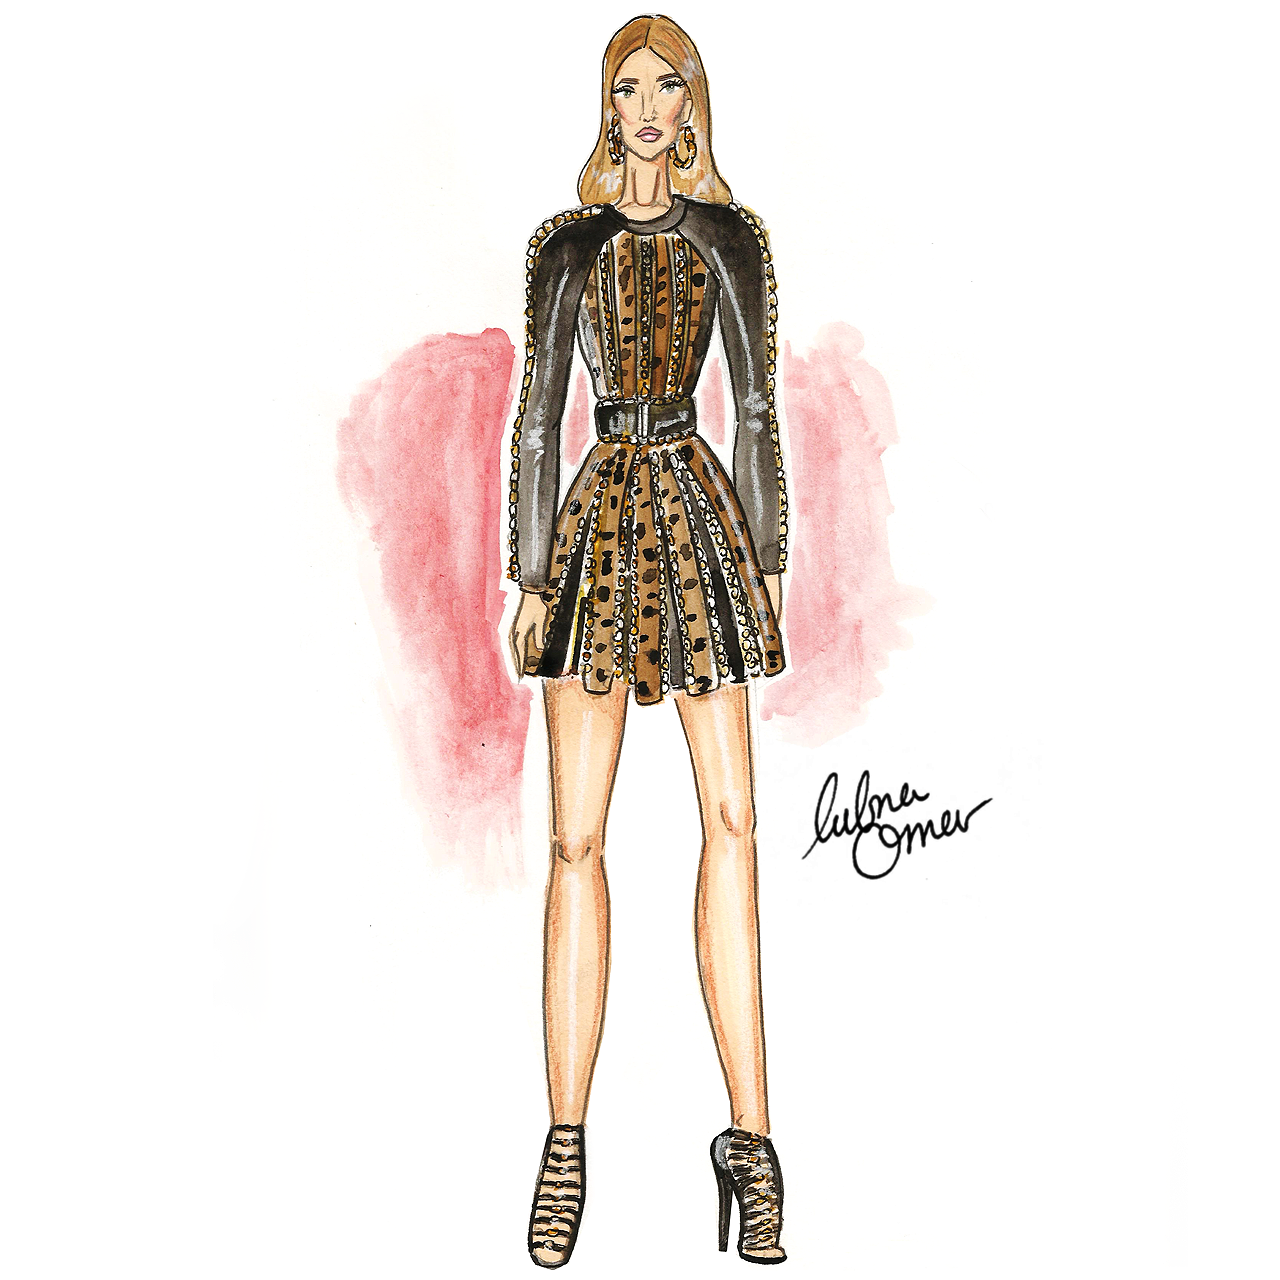 Rosie Huntington-Whiteley in Balmain illustration by Lubna Omar